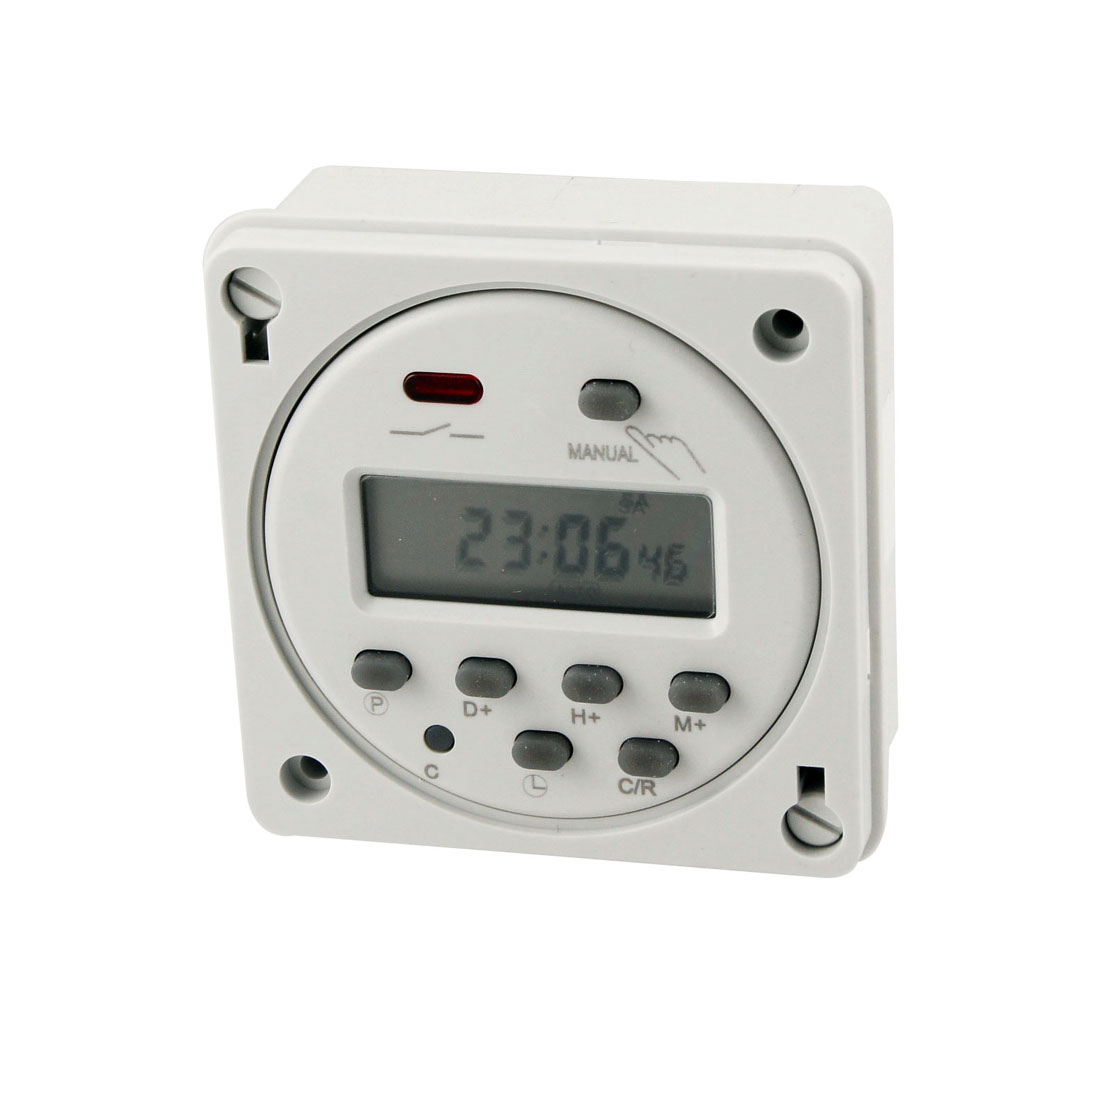 Unique Bargains Cn101A Type Weekly Programmable Timer AC 220-240V